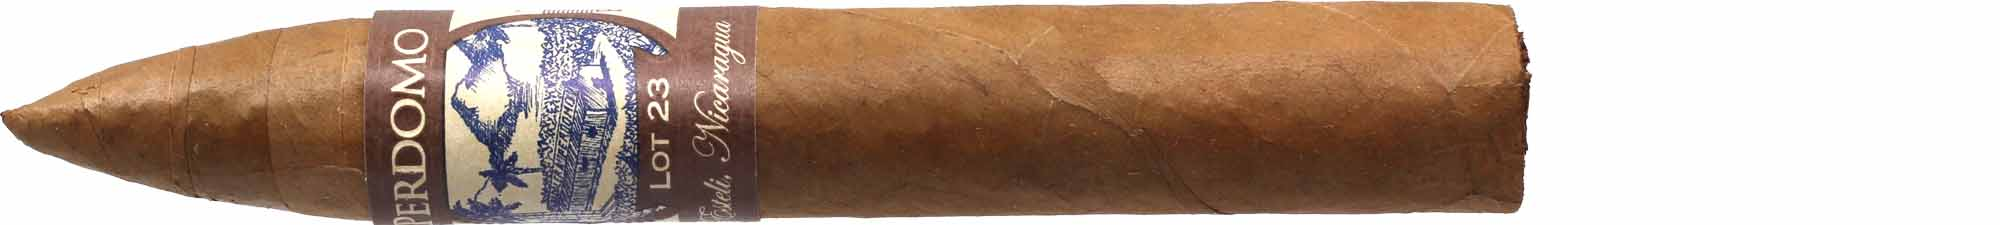 Perdomo Lot 23 Connecticut Belicoso